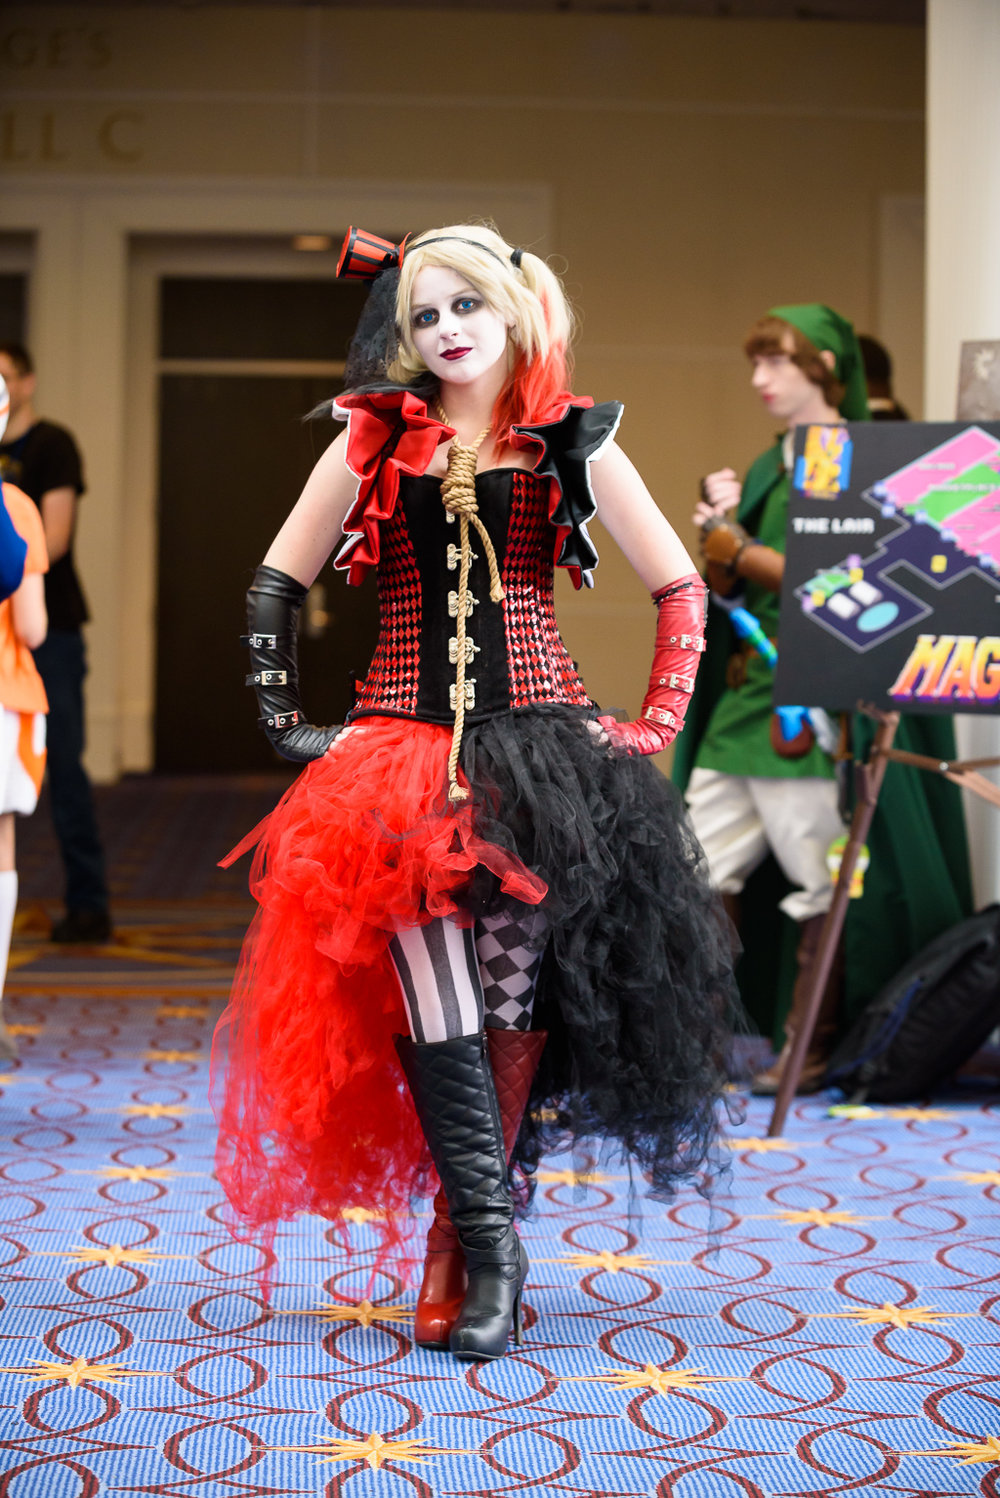 Magfest-Cosplay-4.jpg